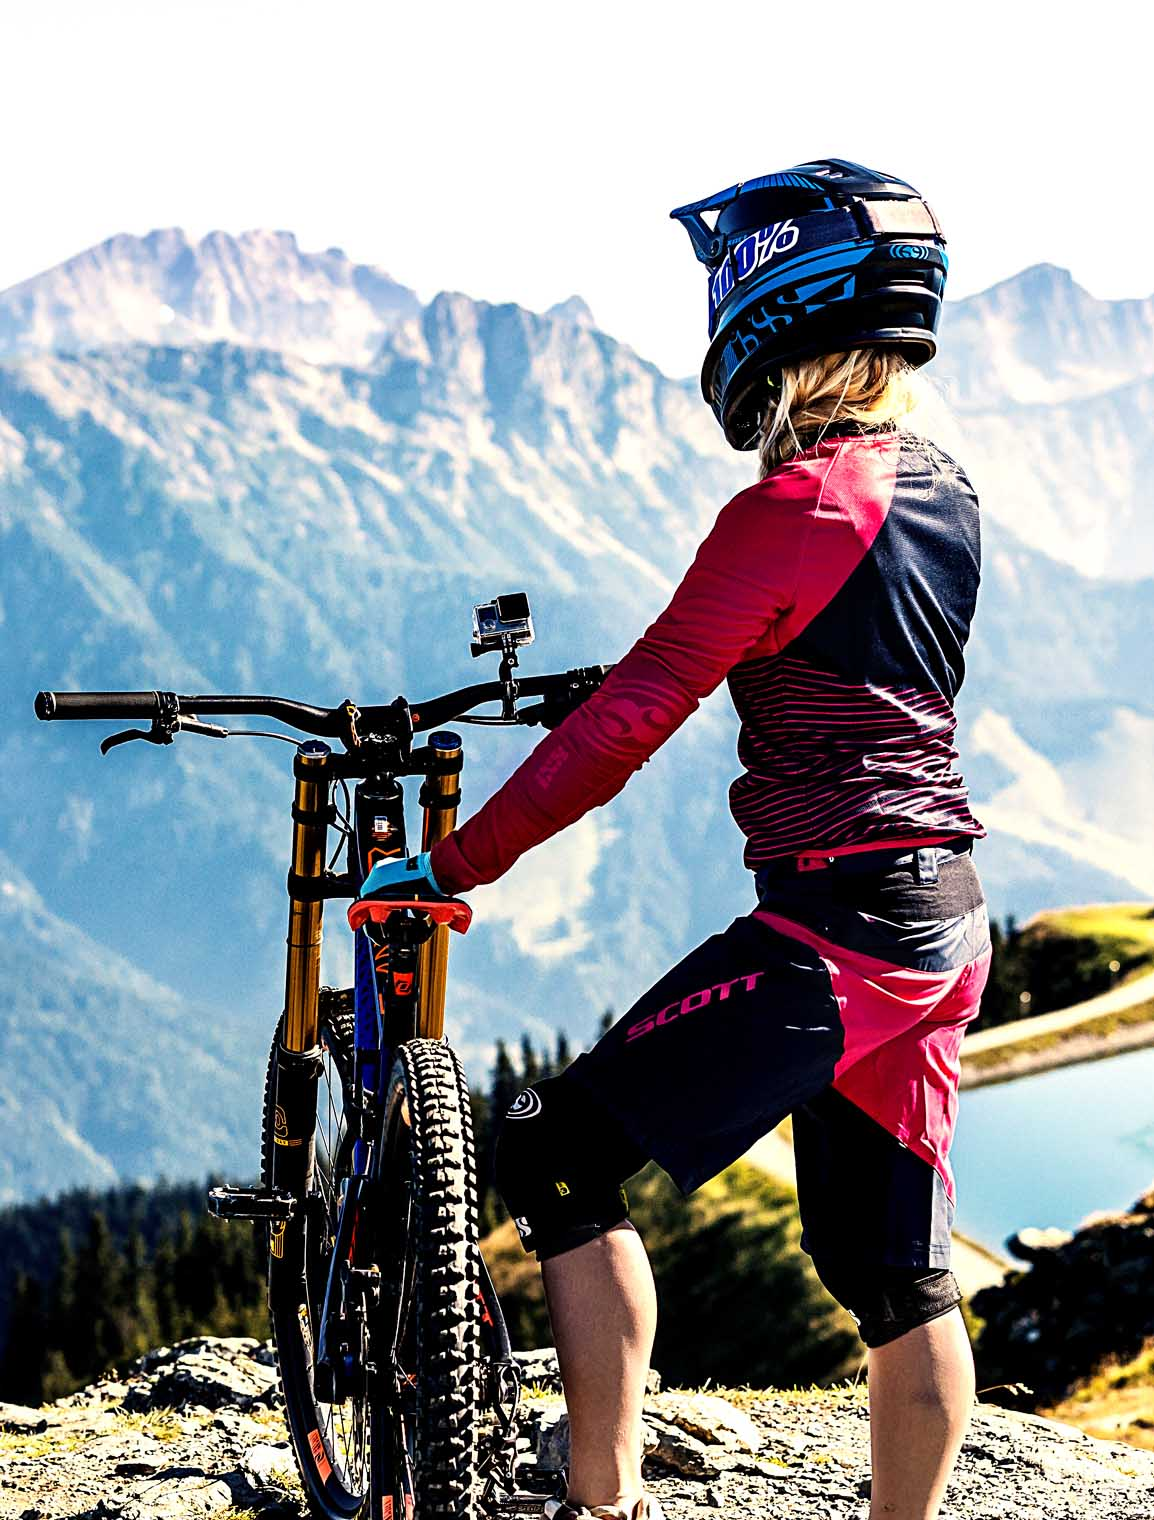 saalfelden_leogang_sunrise_asitz_epic_bike_adventure_walking